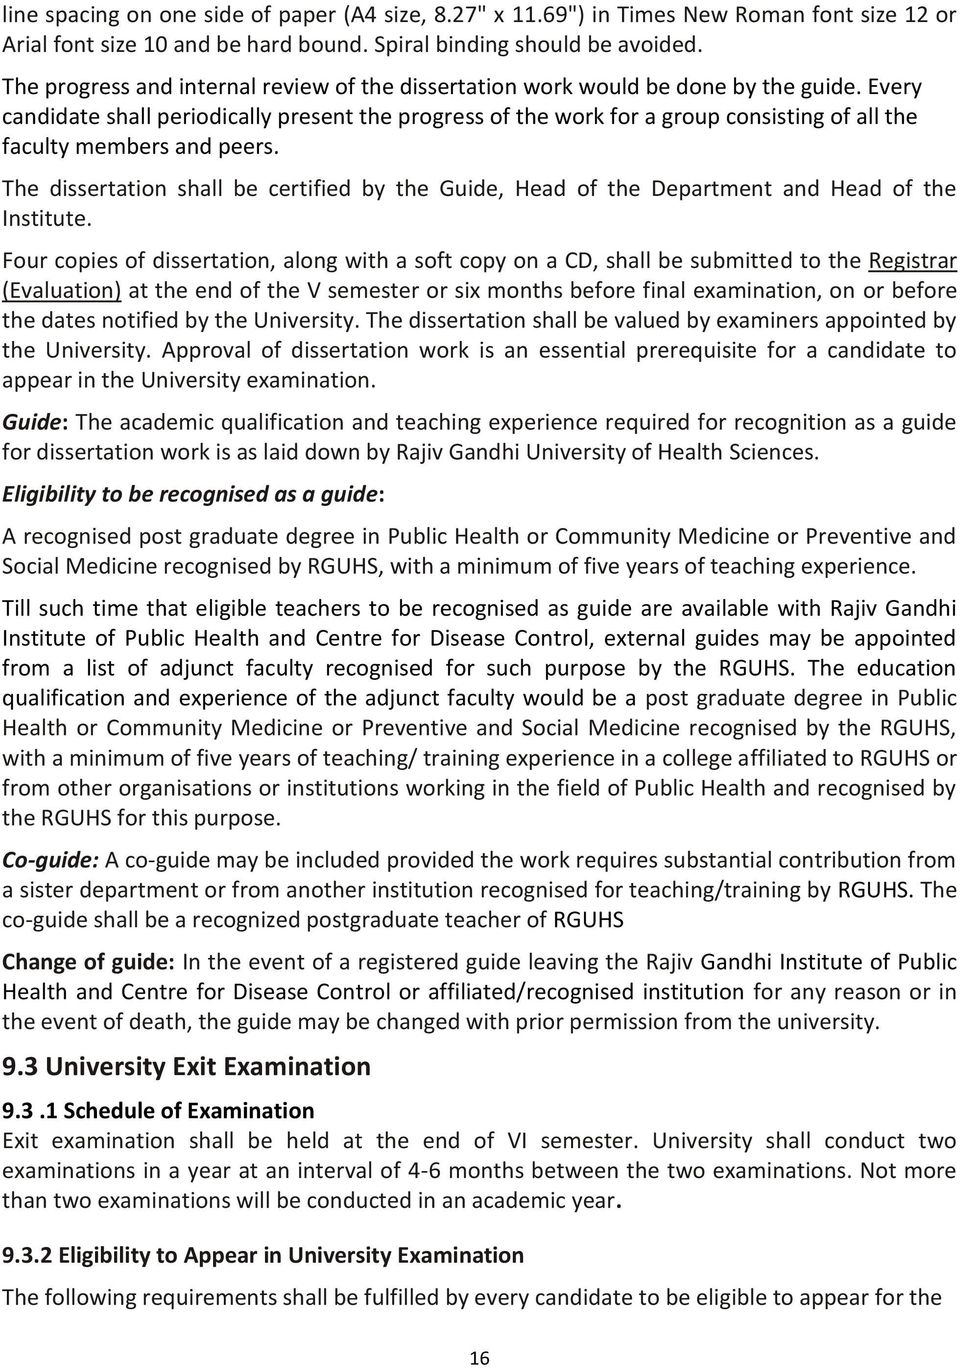 rajiv gandhi university of health science dissertation